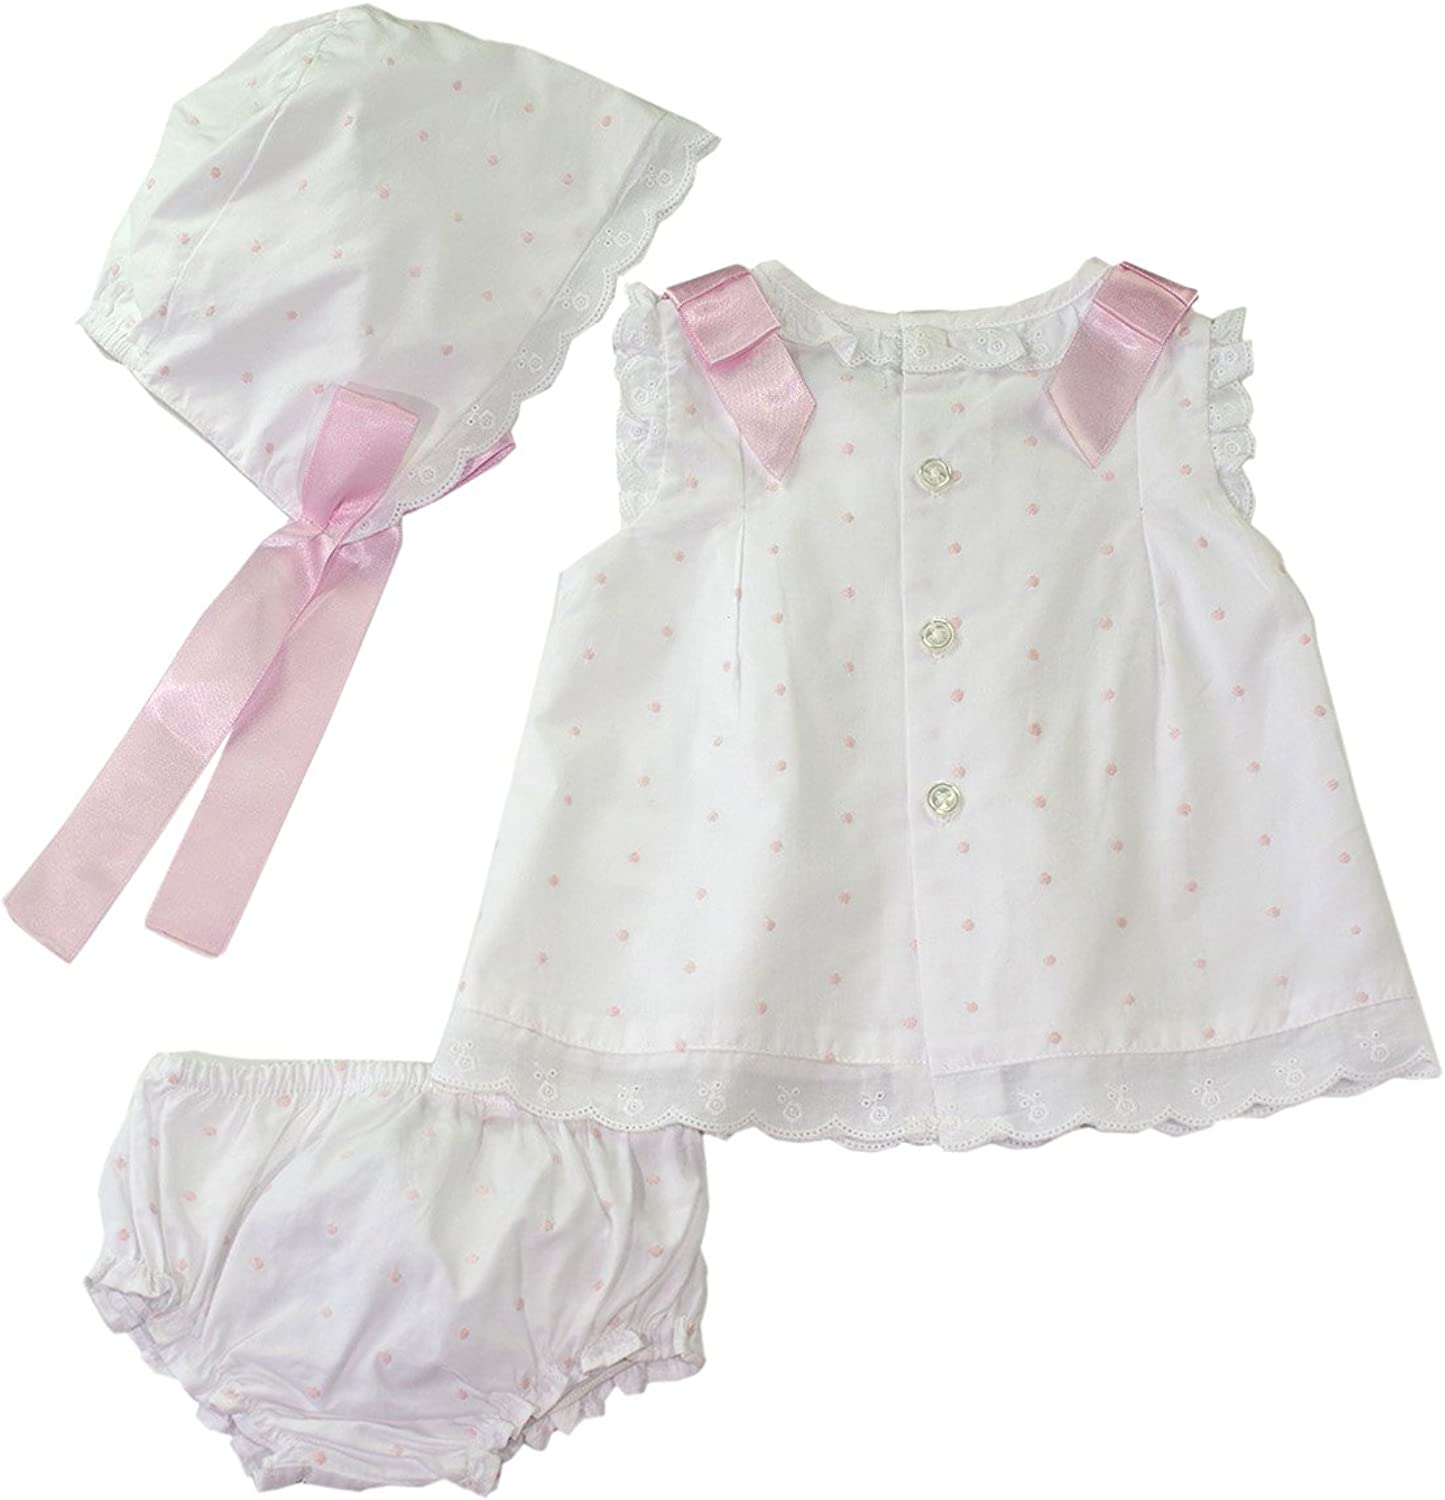 Boys Christening Outfit Dot Embroidery Short Set for Baptism